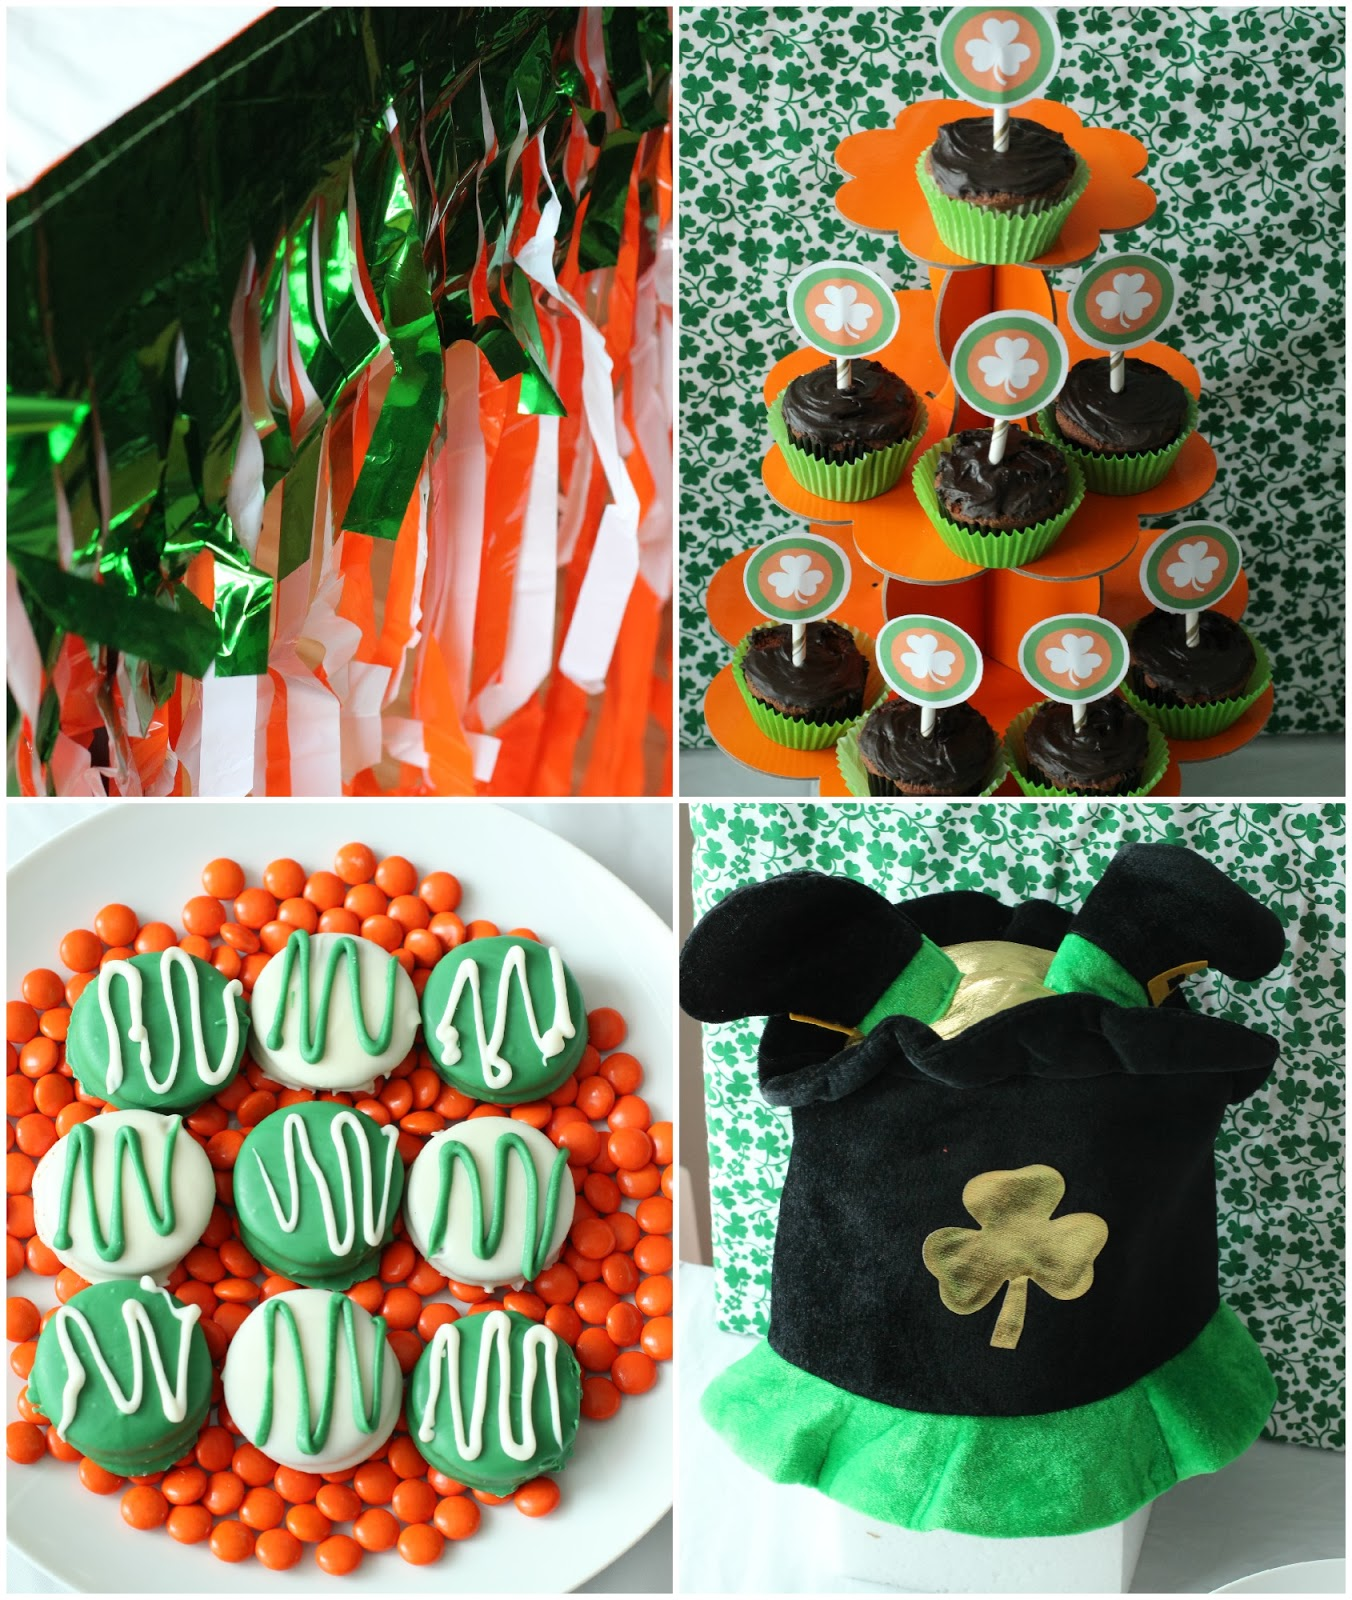 Awesome St. Patrick's Day party ideas and free printables from playpartypin.com #parties #StPatricksDay #partygames #freeprintables